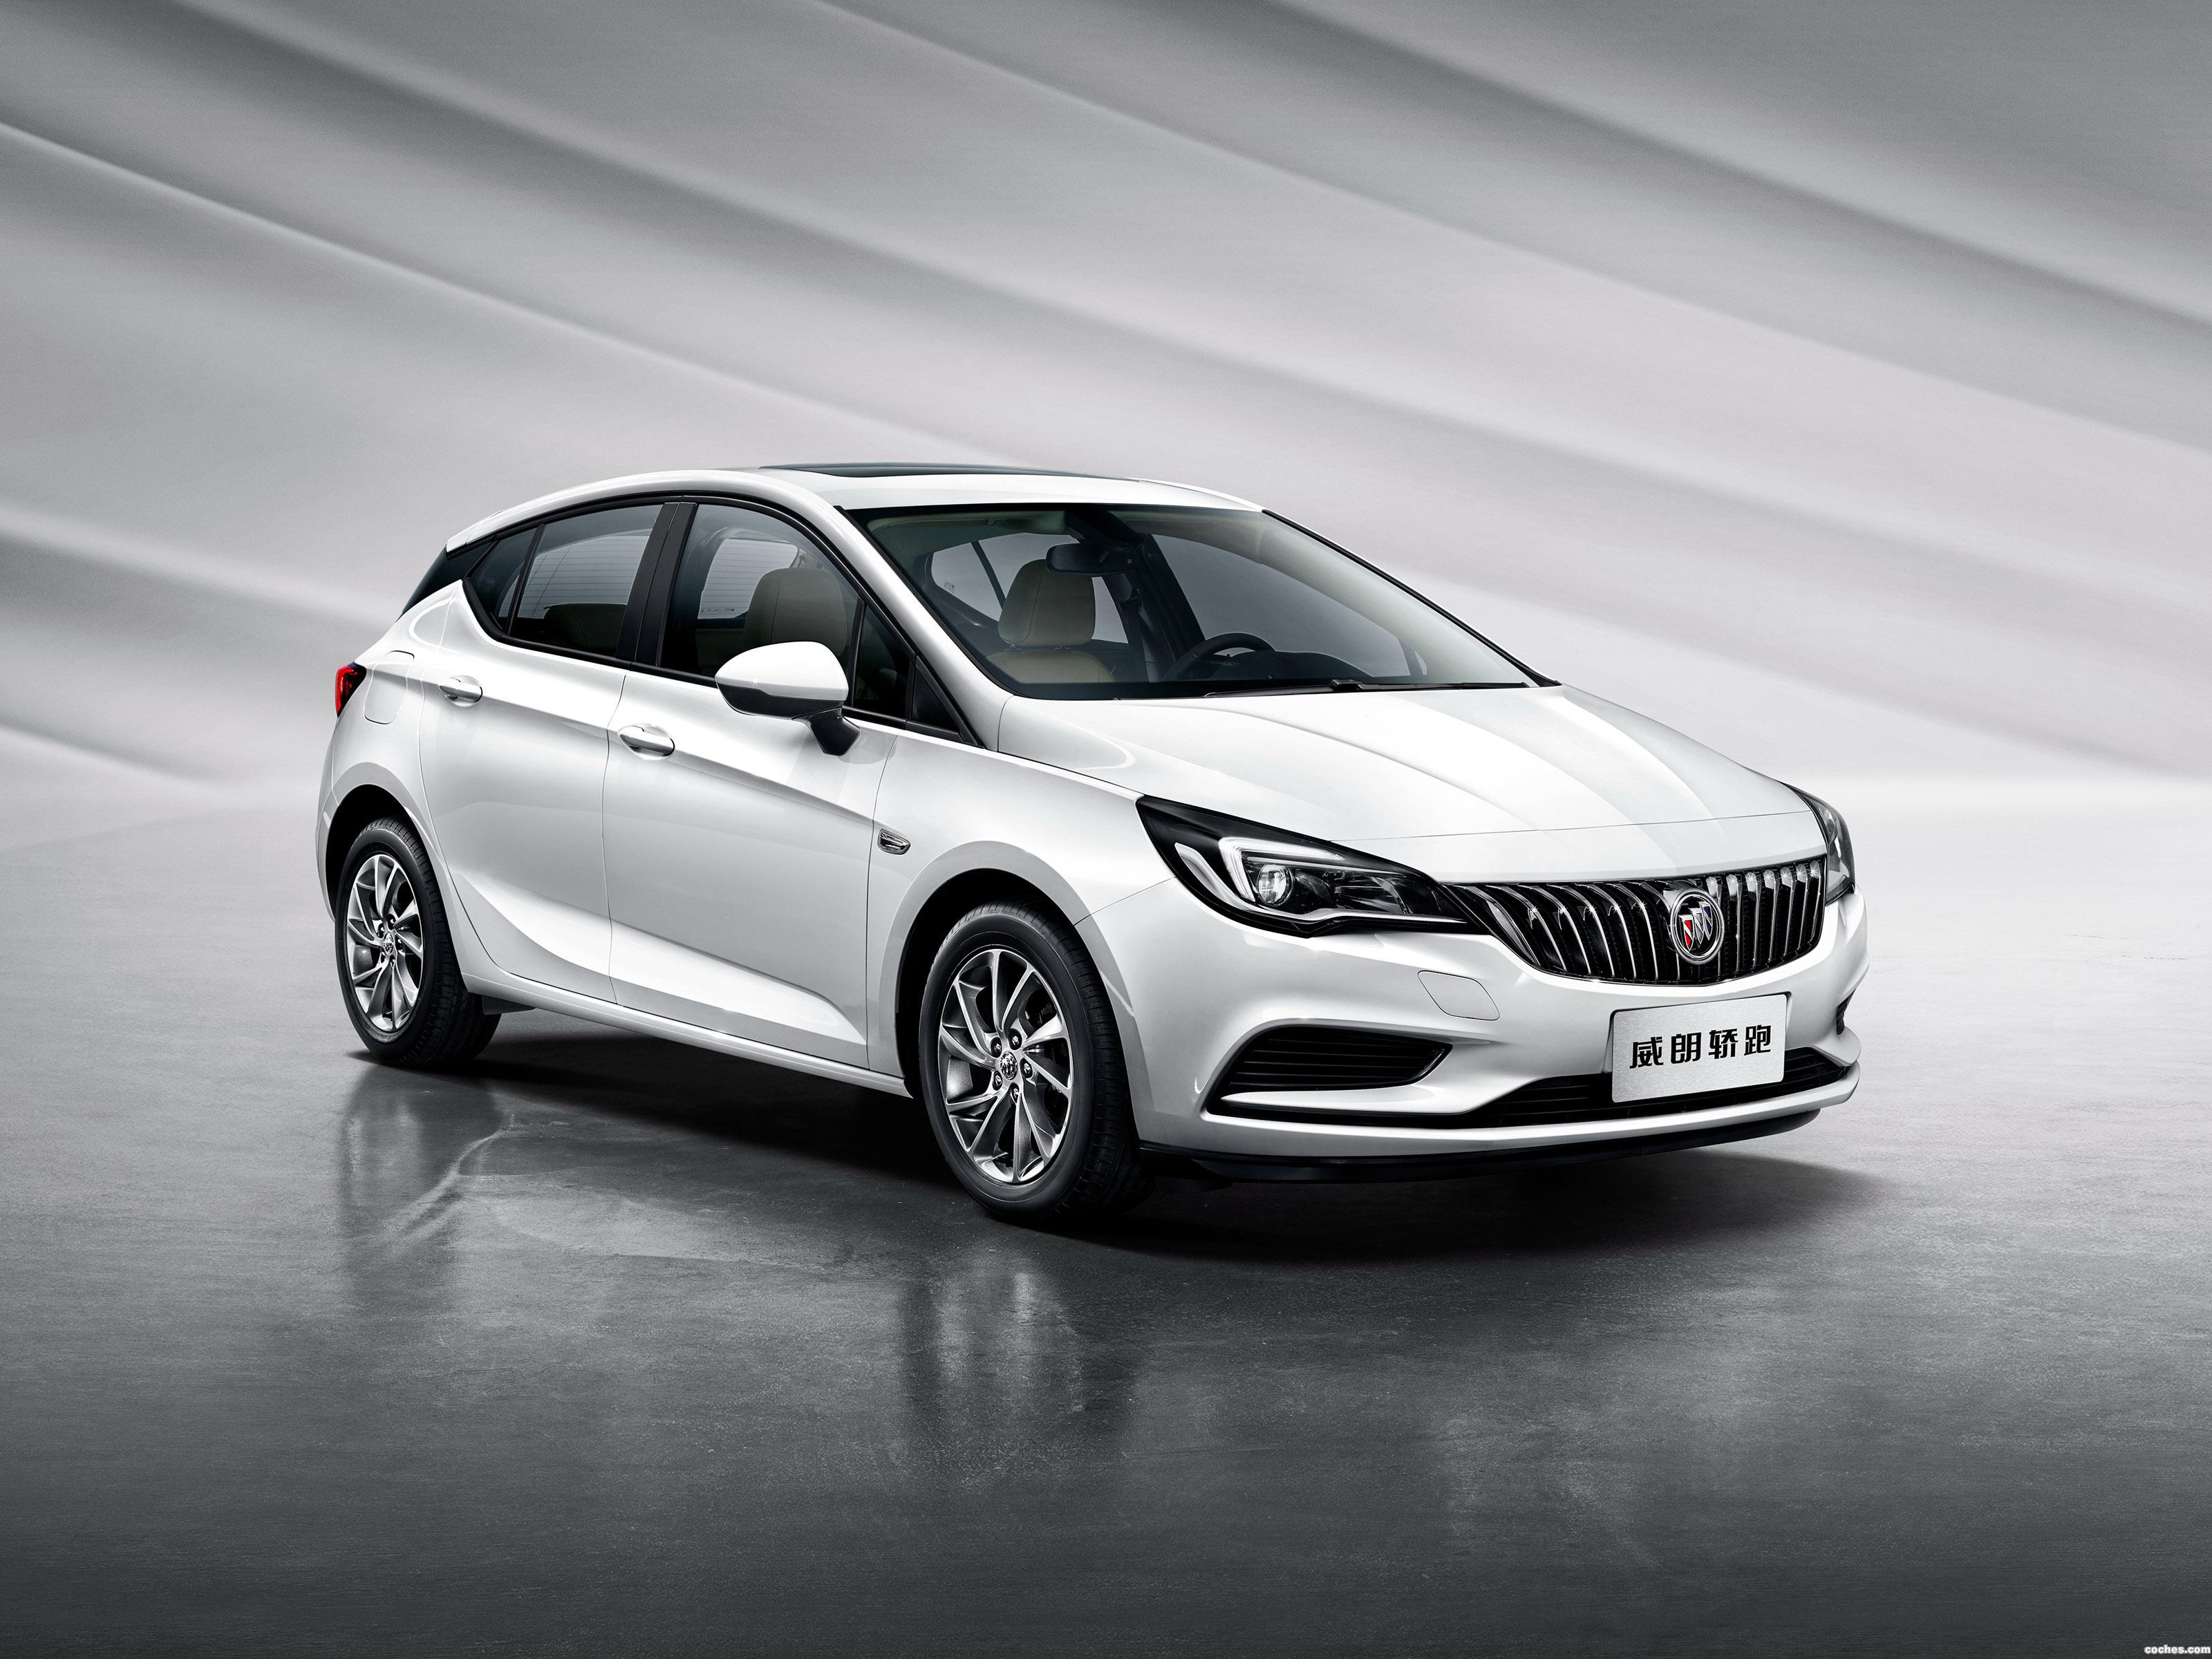 Foto 0 de Buick Verano Hatchback China 2015